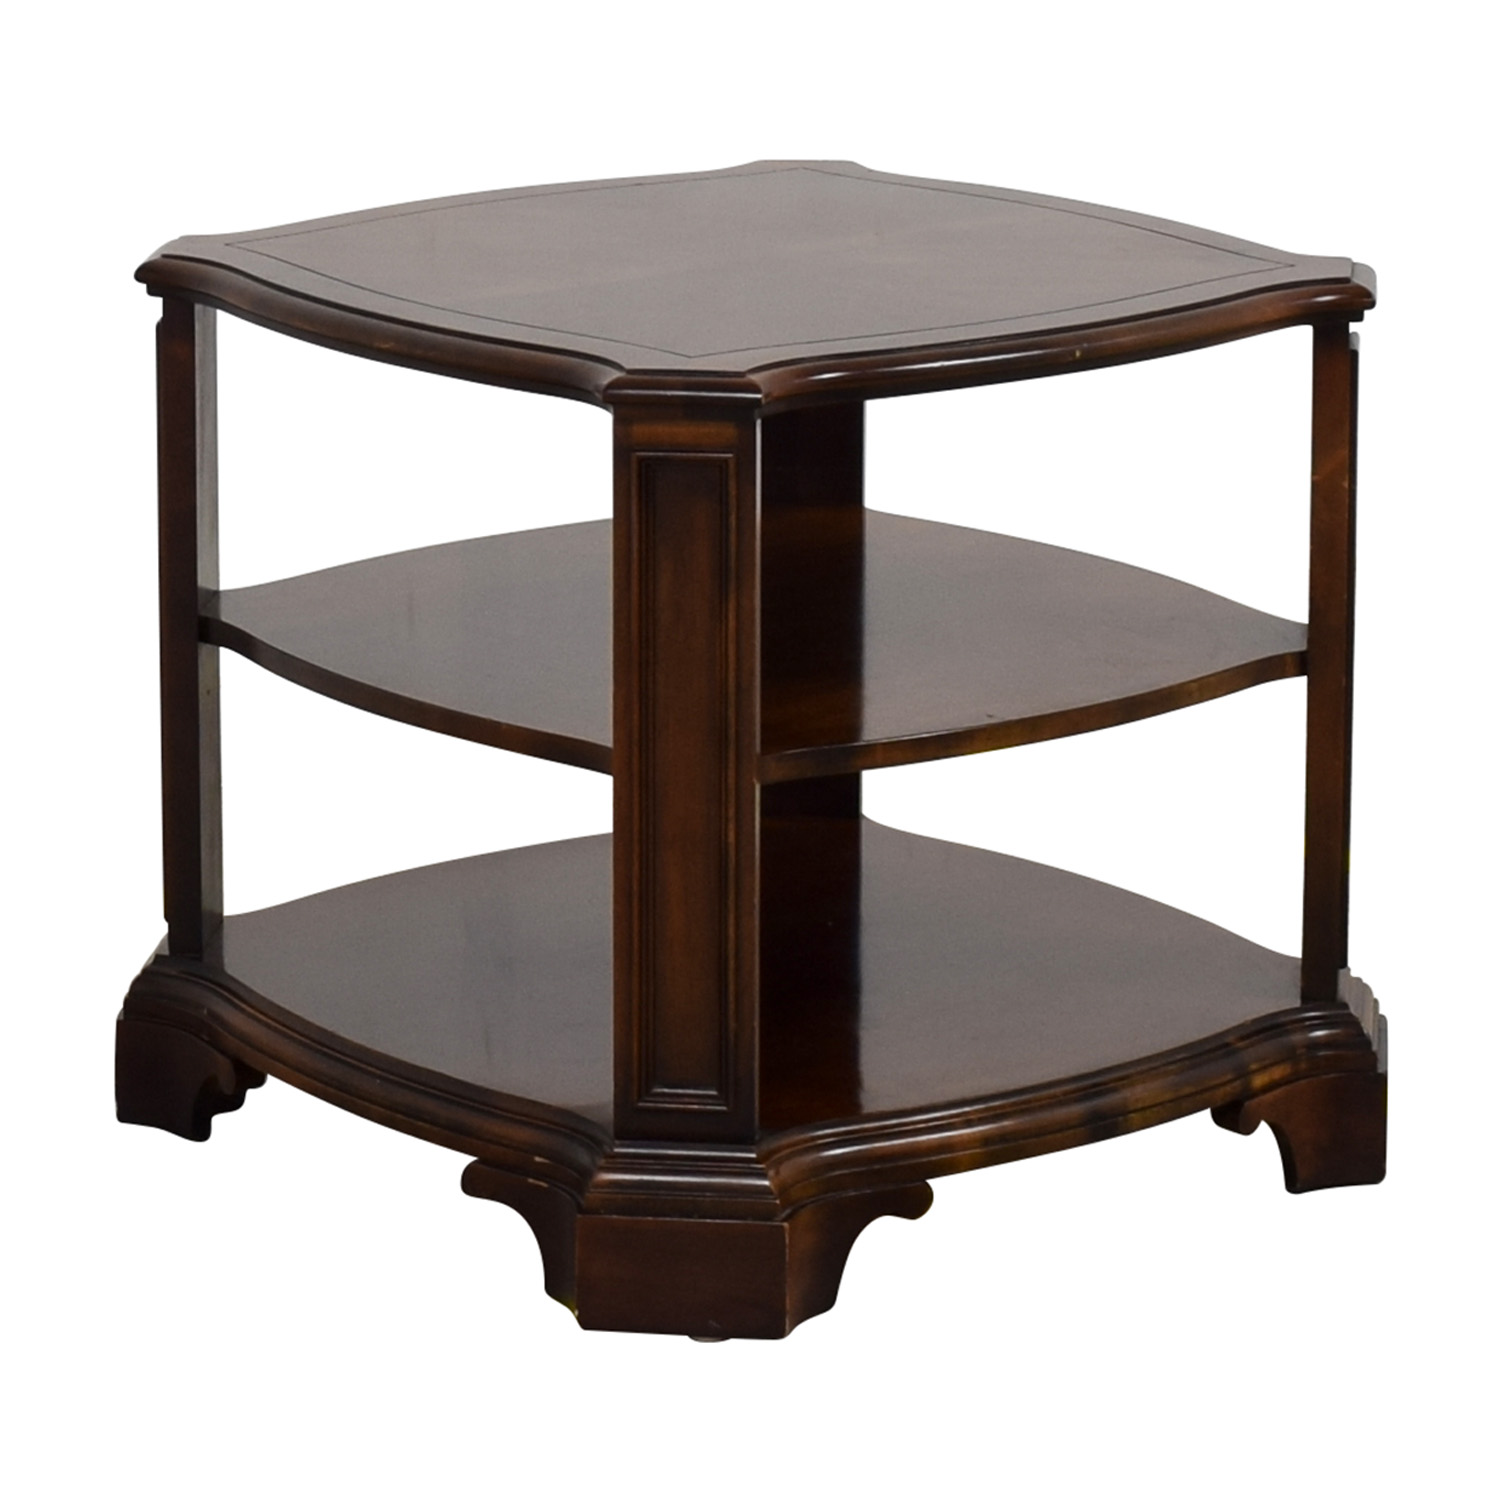 Three Level End Table / End Tables